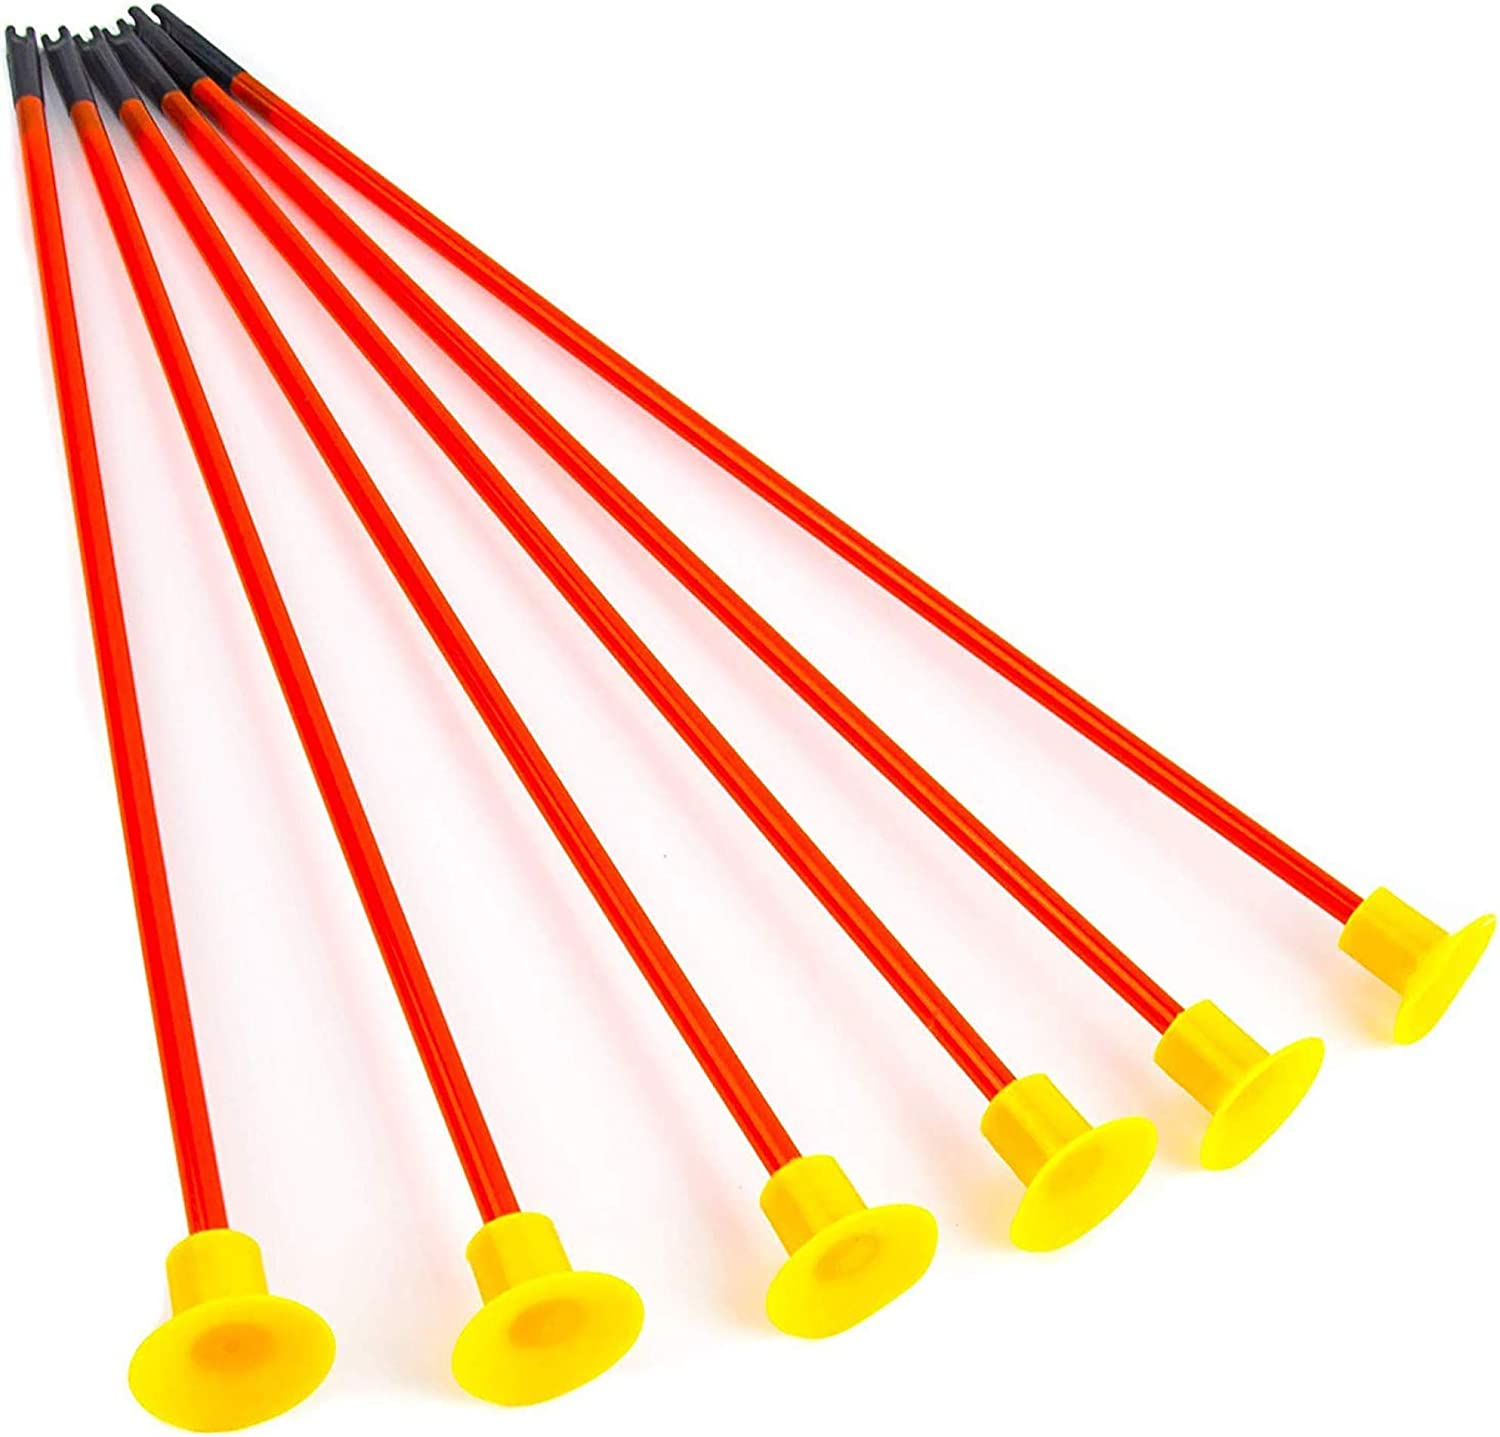 Fstop Labs 6 Packs Replacement Suction Cups Arrows for Kids Toy Bow